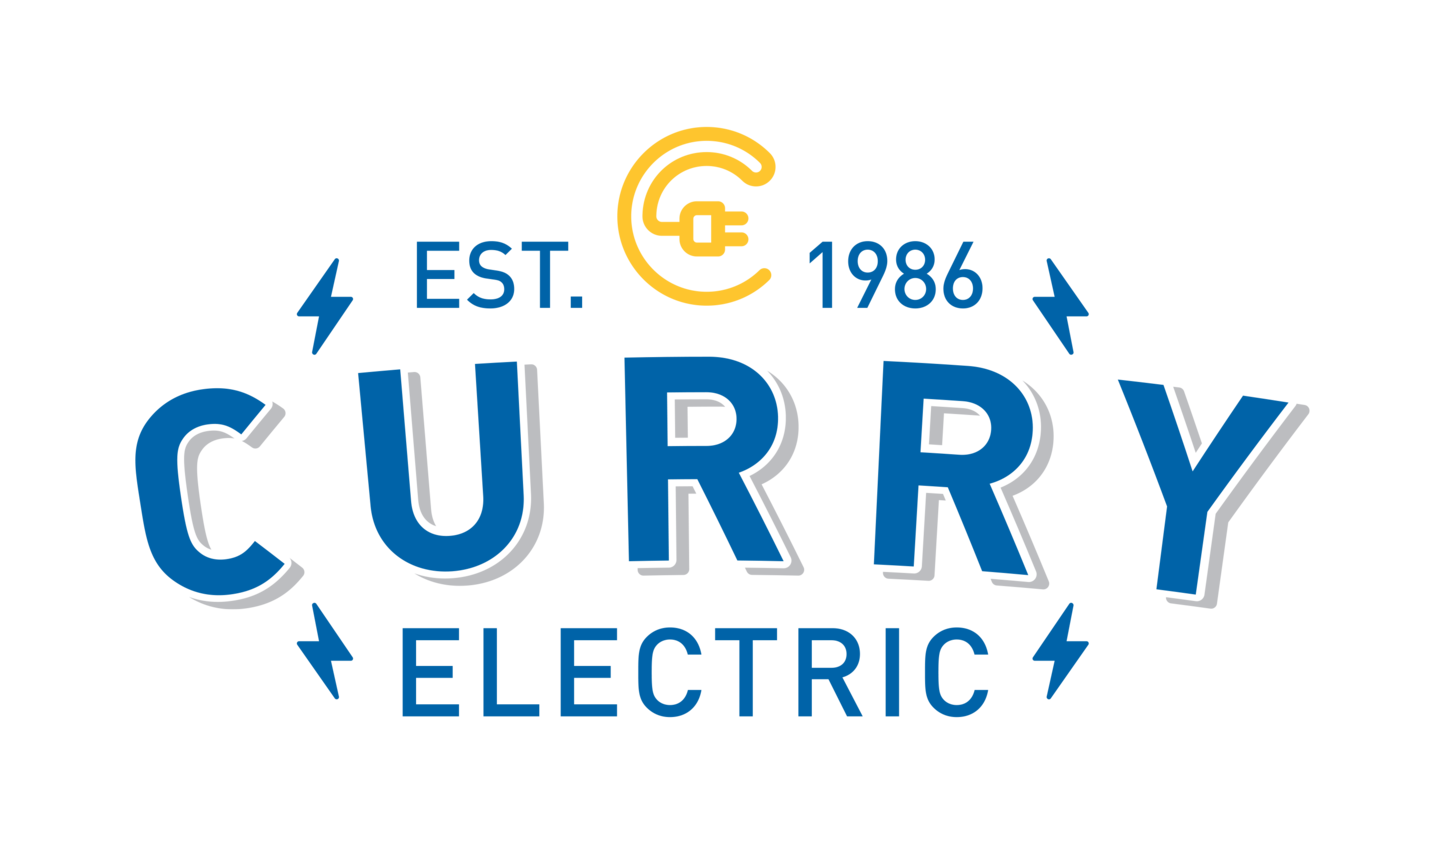 CURRY ELECTRIC INC